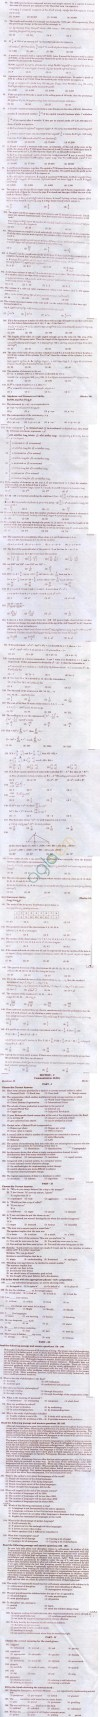 ICET 2012 Question Papers with Answers